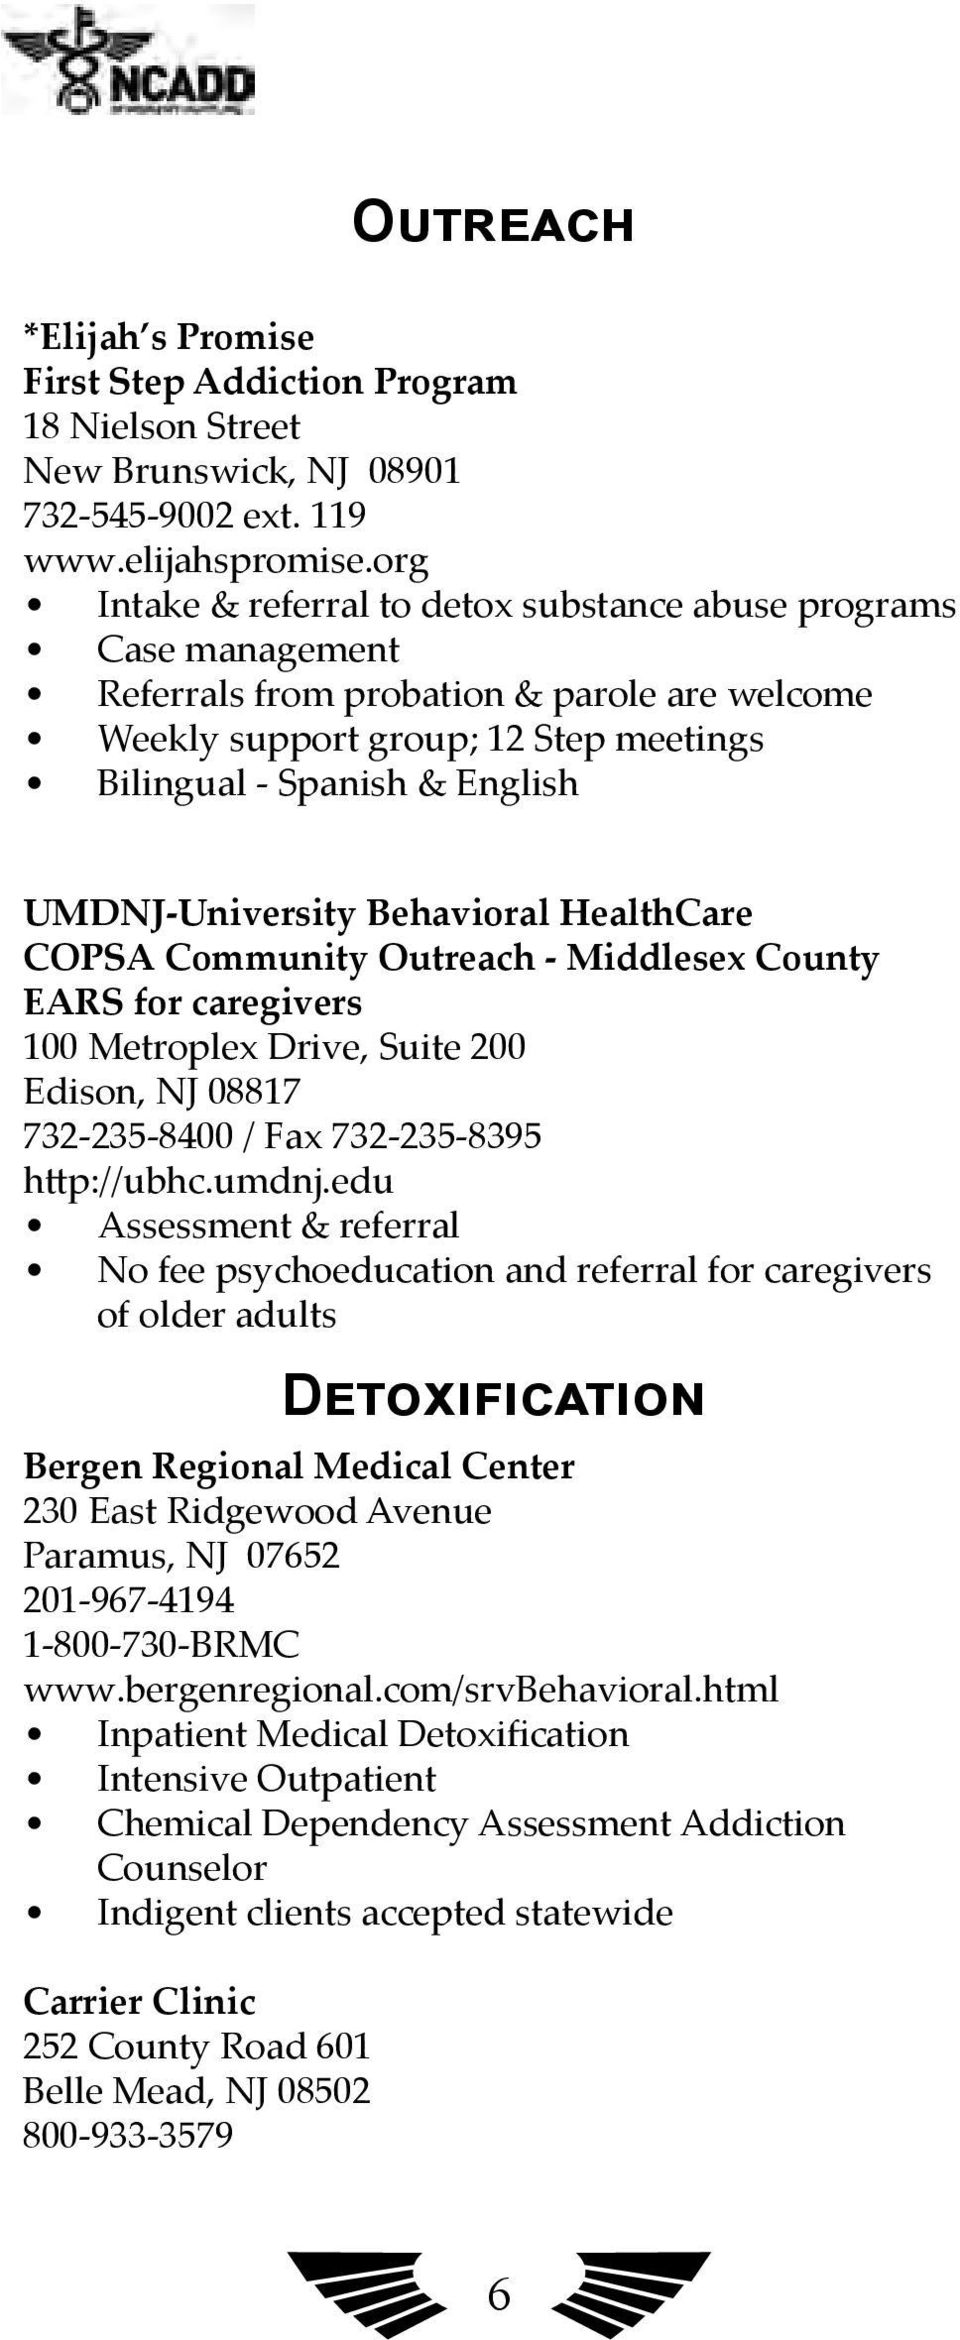 UMDNJ-University Behavioral HealthCare COPSA Community Outreach - Middlesex County EARS for caregivers 100 Metroplex Drive, Suite 200 Edison, NJ 08817 732-235-8400 / Fax 732-235-8395 http://ubhc.